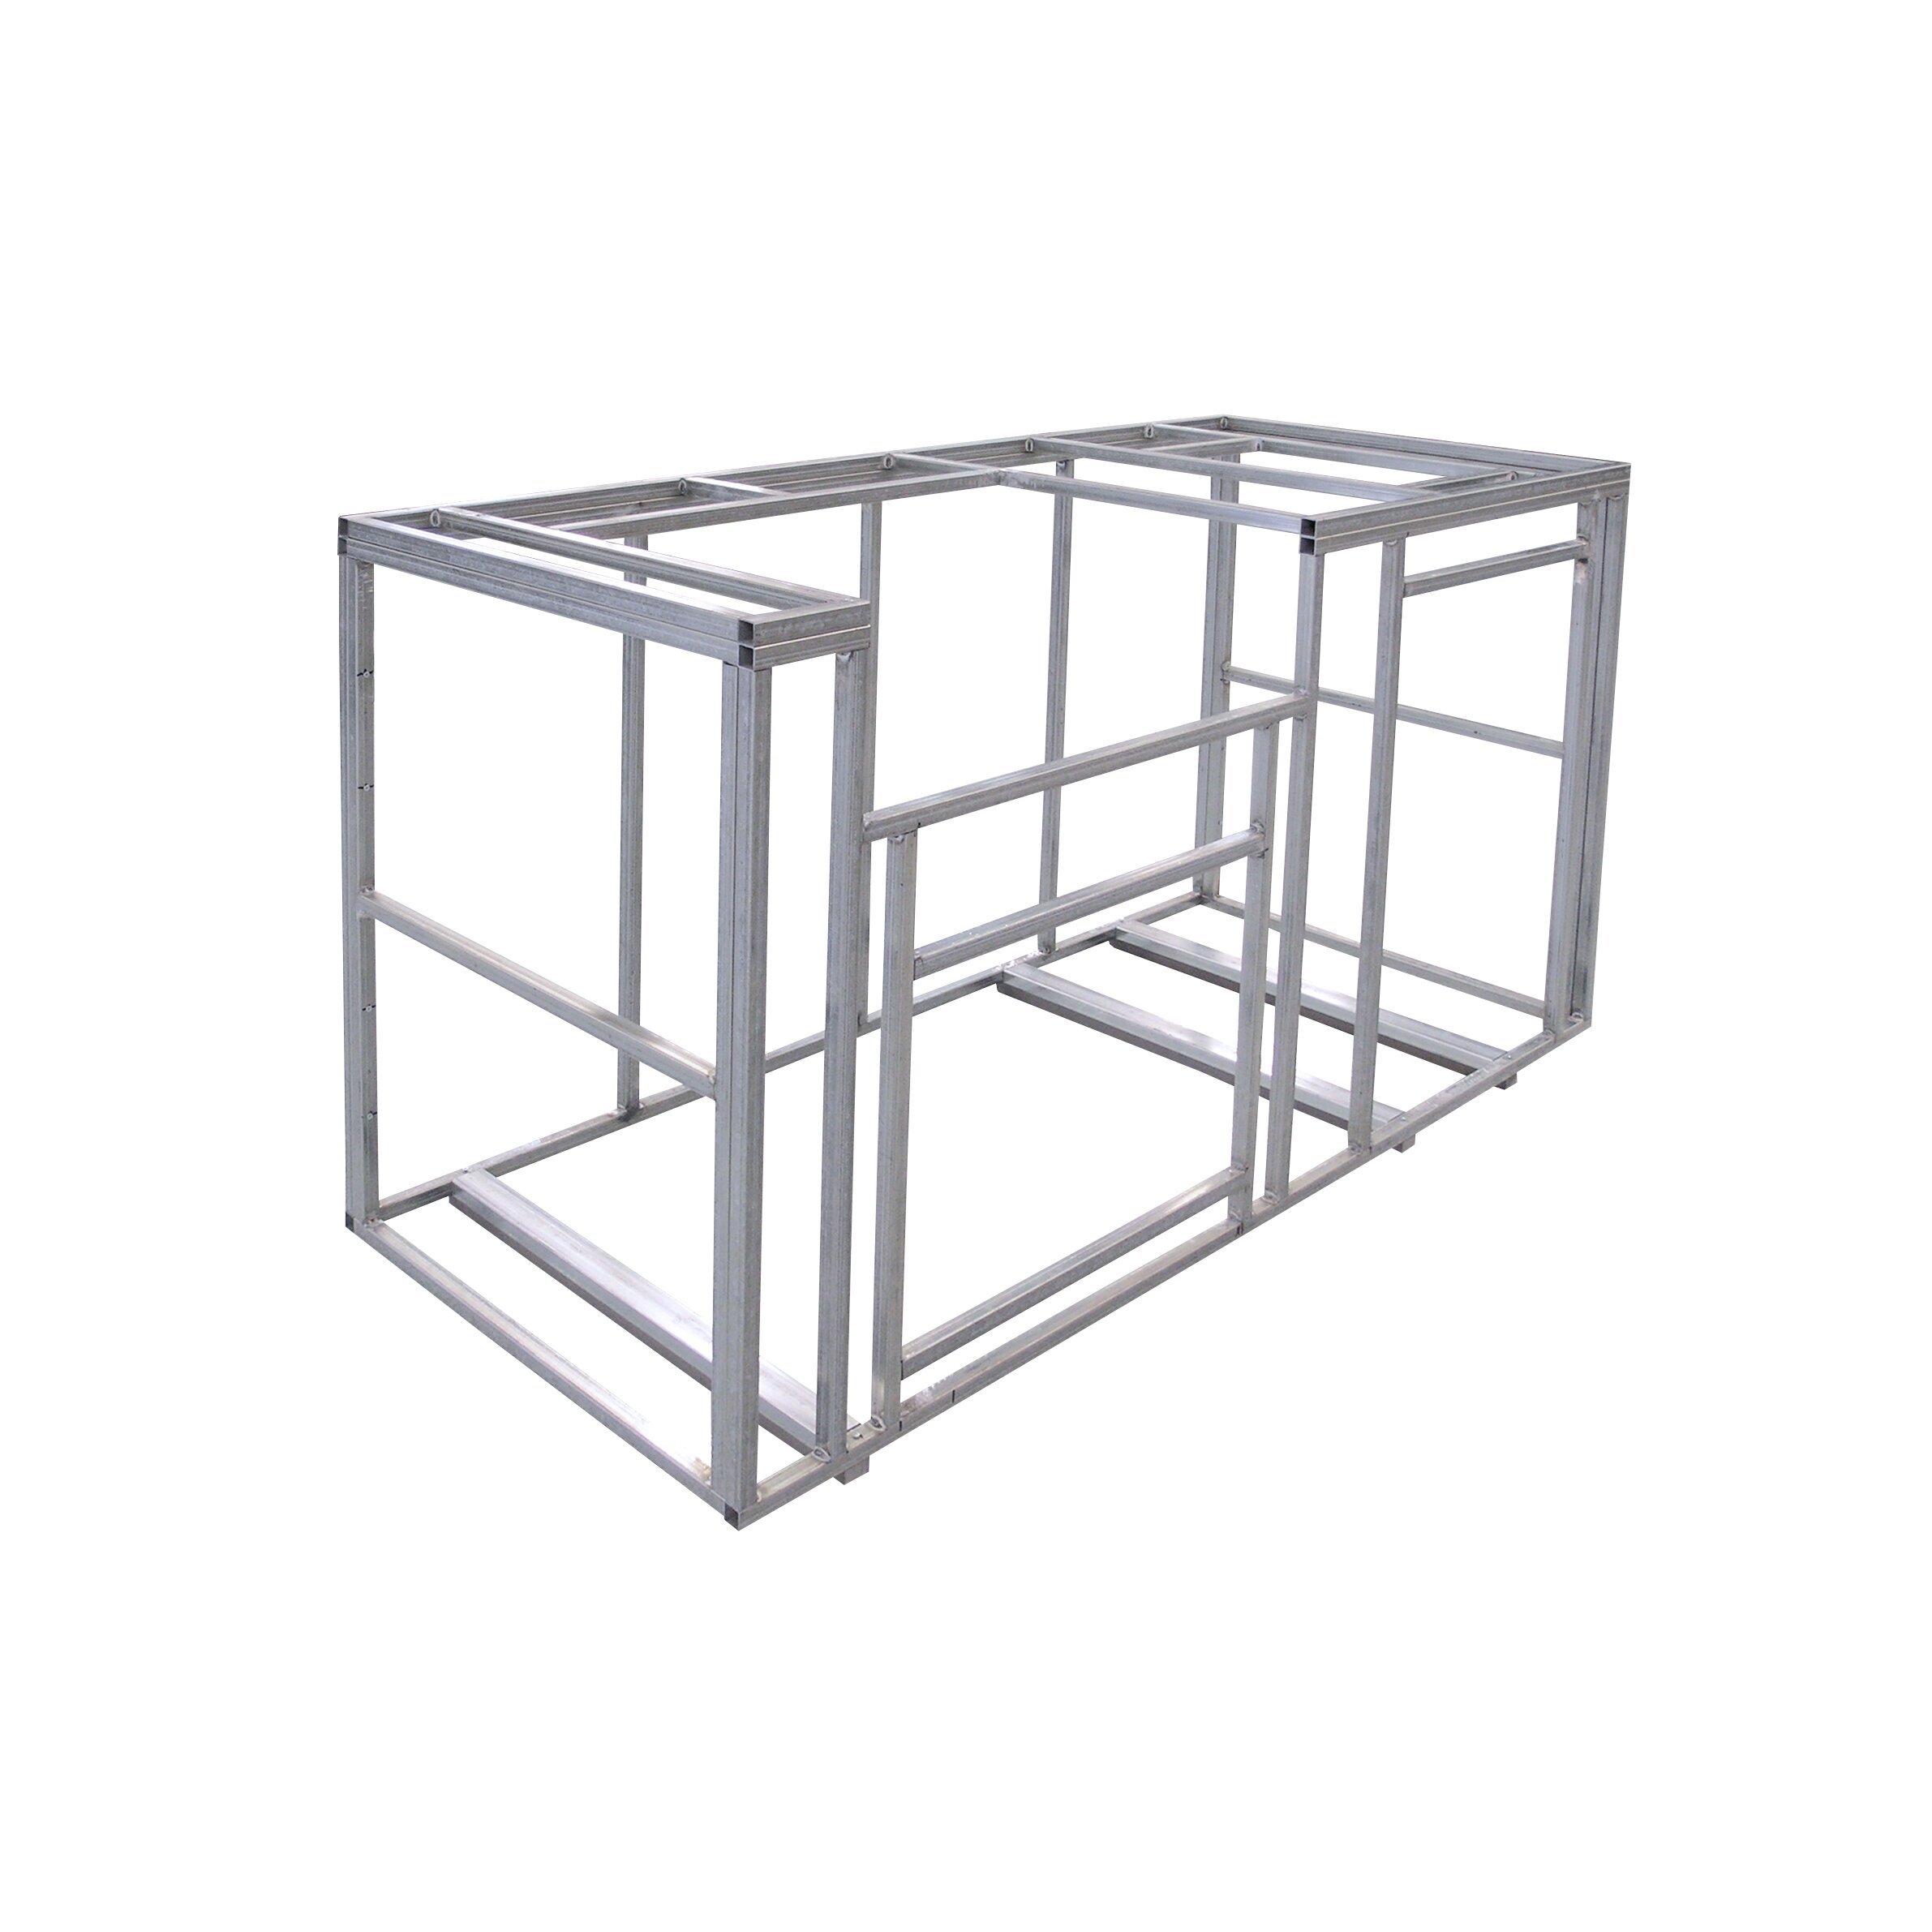 Outdoor Kitchen Frames Kits Calflame 6 Ft Outdoor Kitchen Island Frame Kit Wayfair